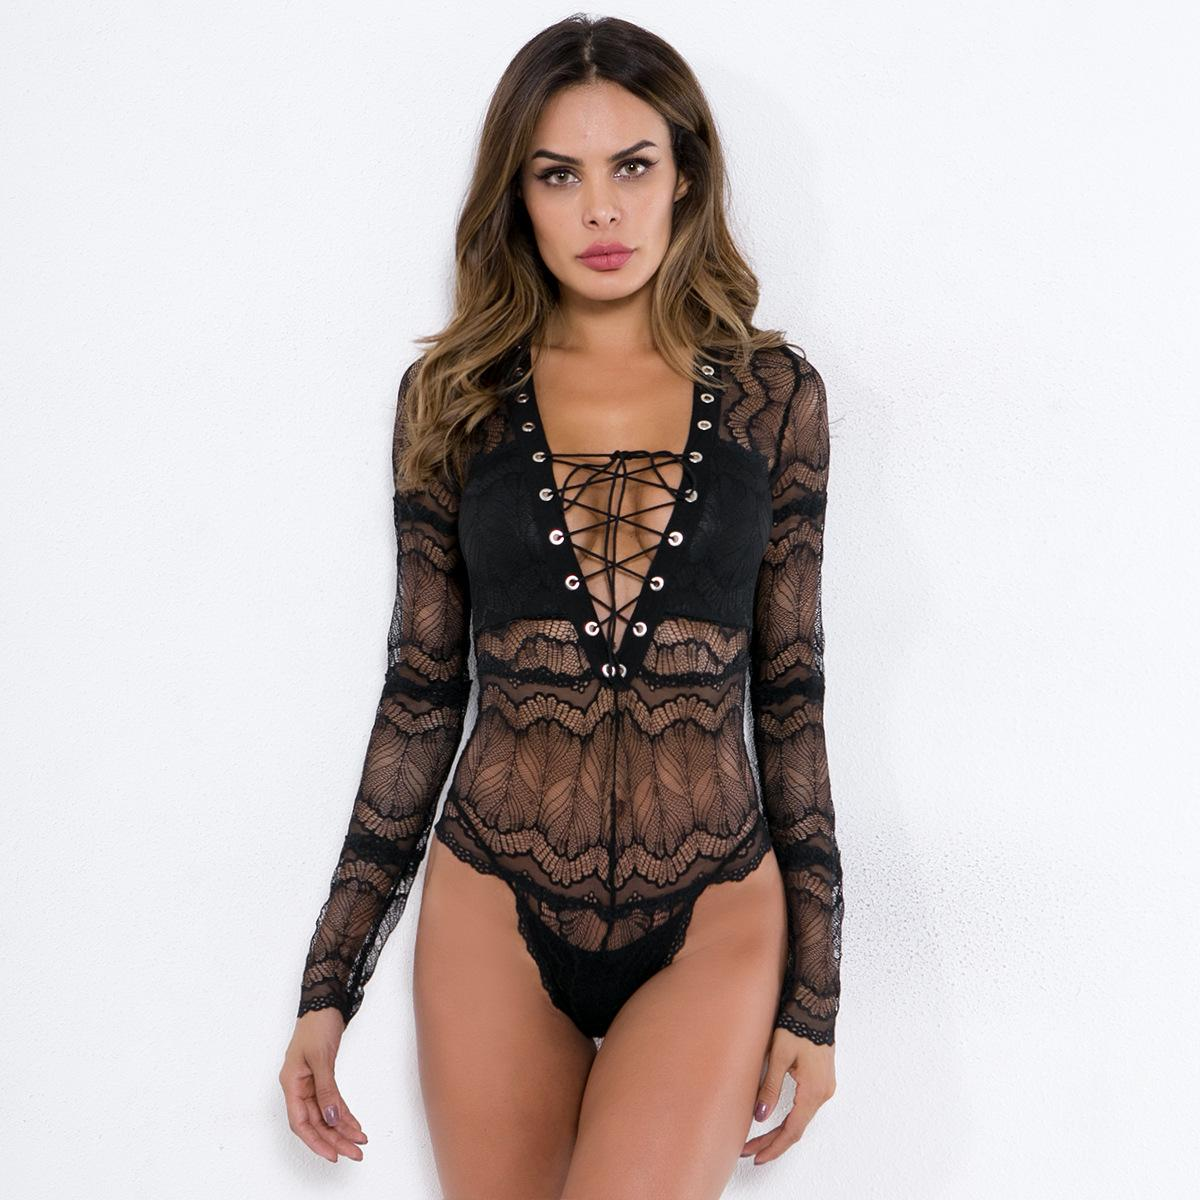 753453c247 2019 Women Sexy Hollow Out Black White Lace Bodysuit See Through Skinny  Long Sleeve Top Body Mujer Jumpsuit Rompers Club Deep V Neck Bodysuits From  ...